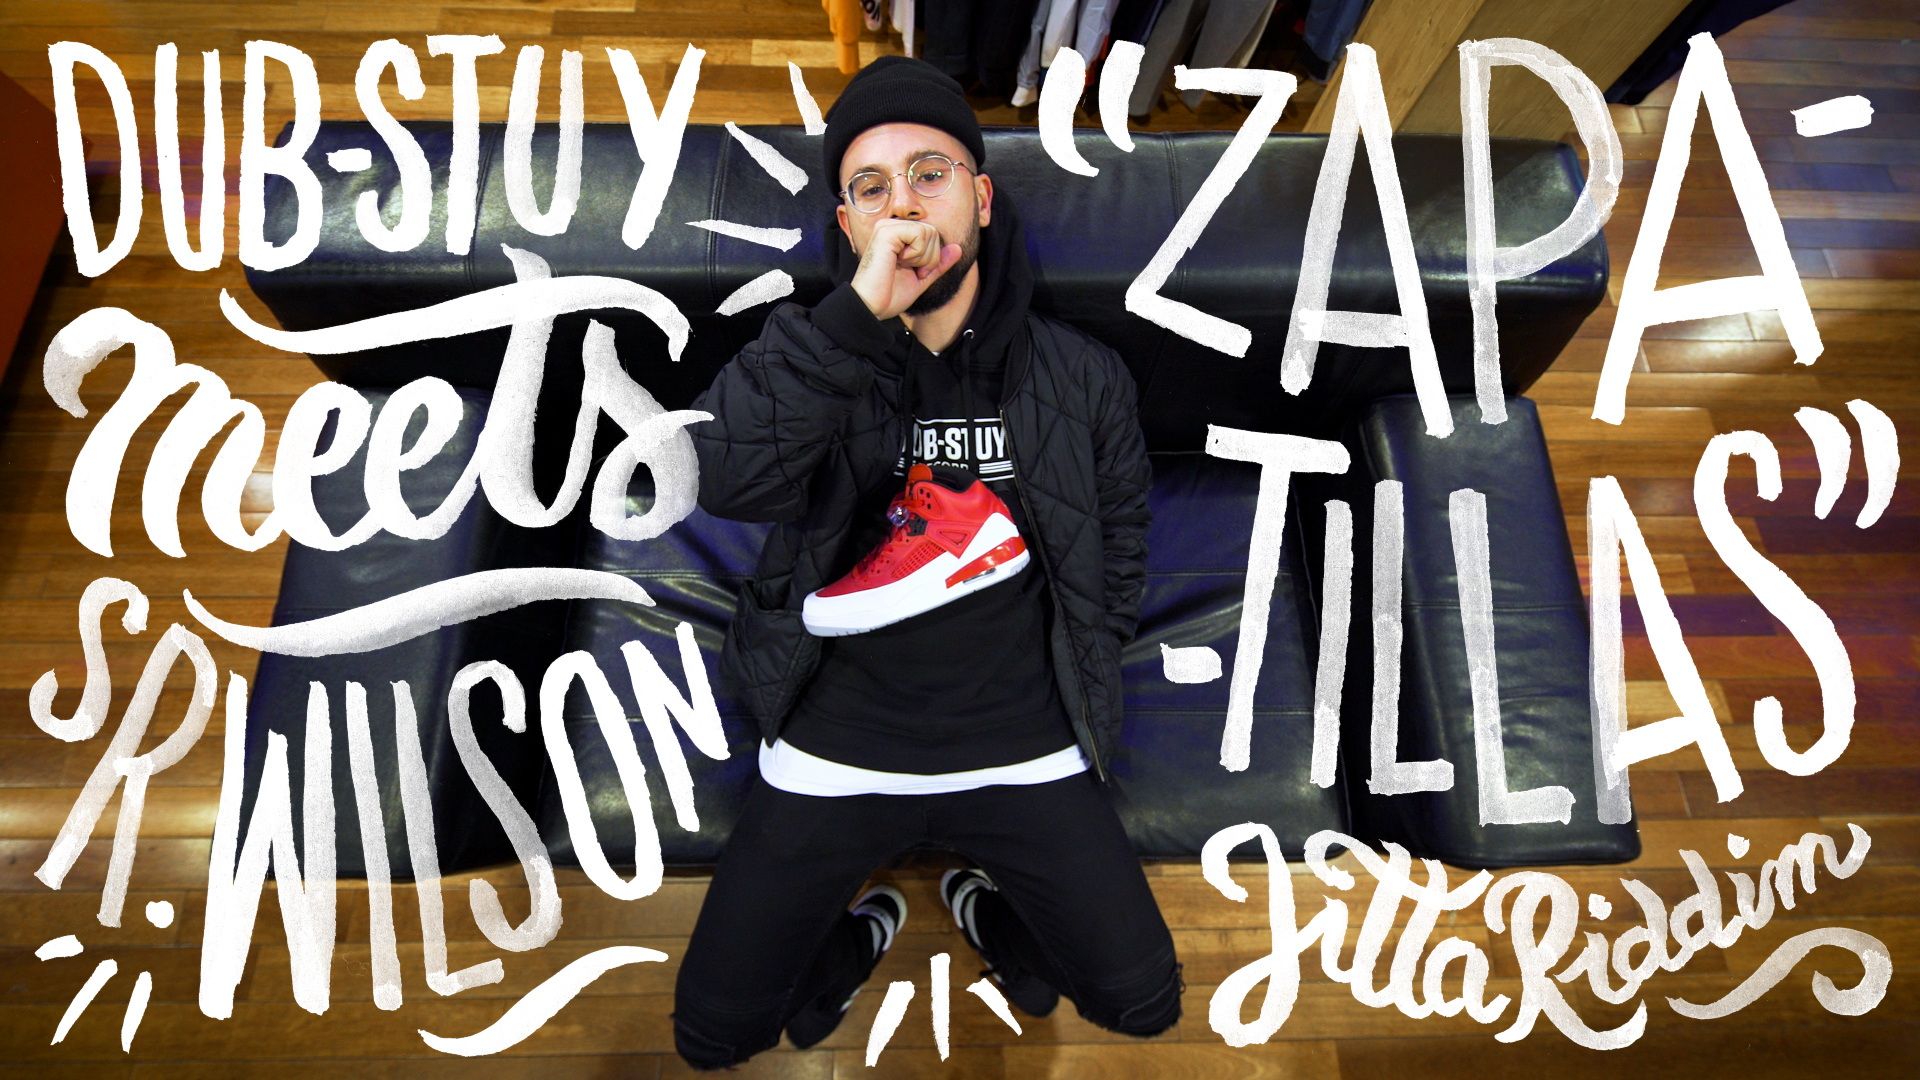 Senior Wilson Zapatillas Music Video Dubstuy